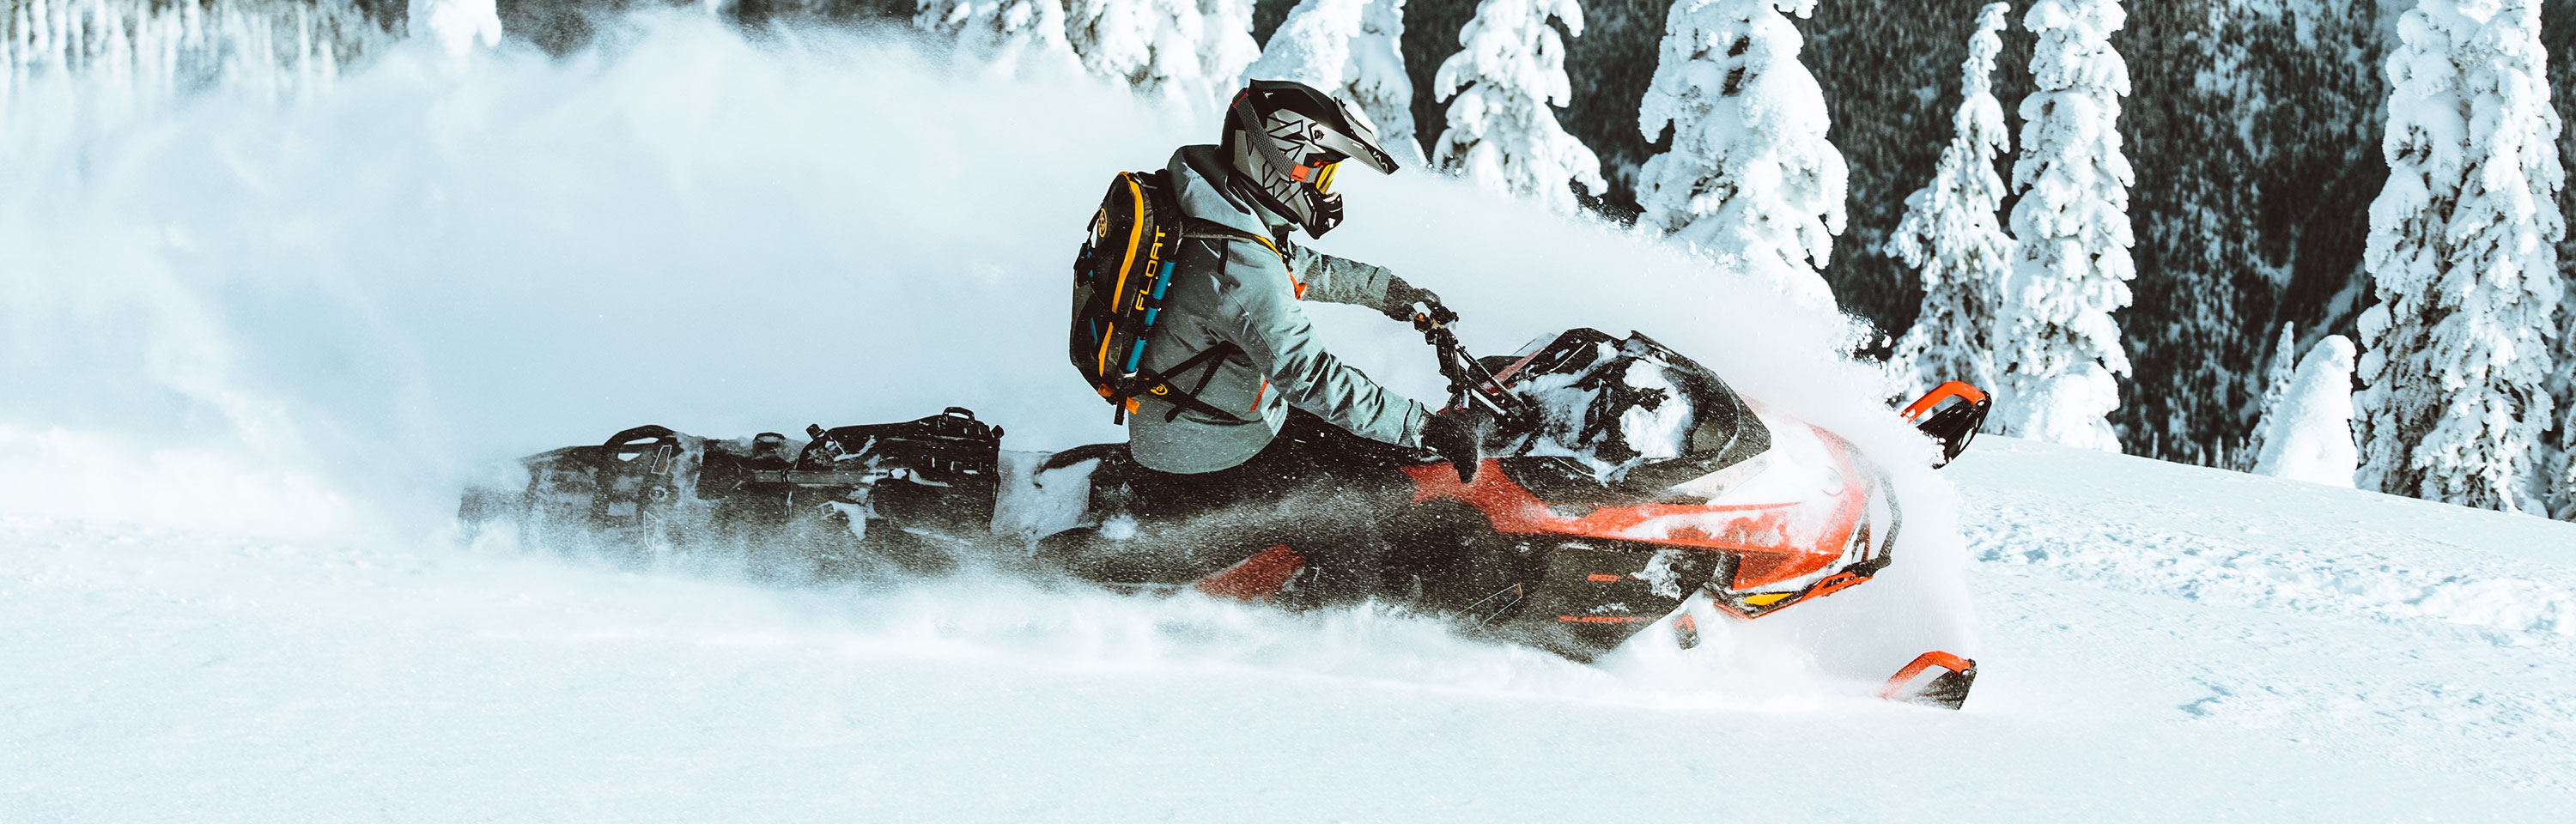 Man riding a snowmobile with High Tech Snowmobile Riding Gear